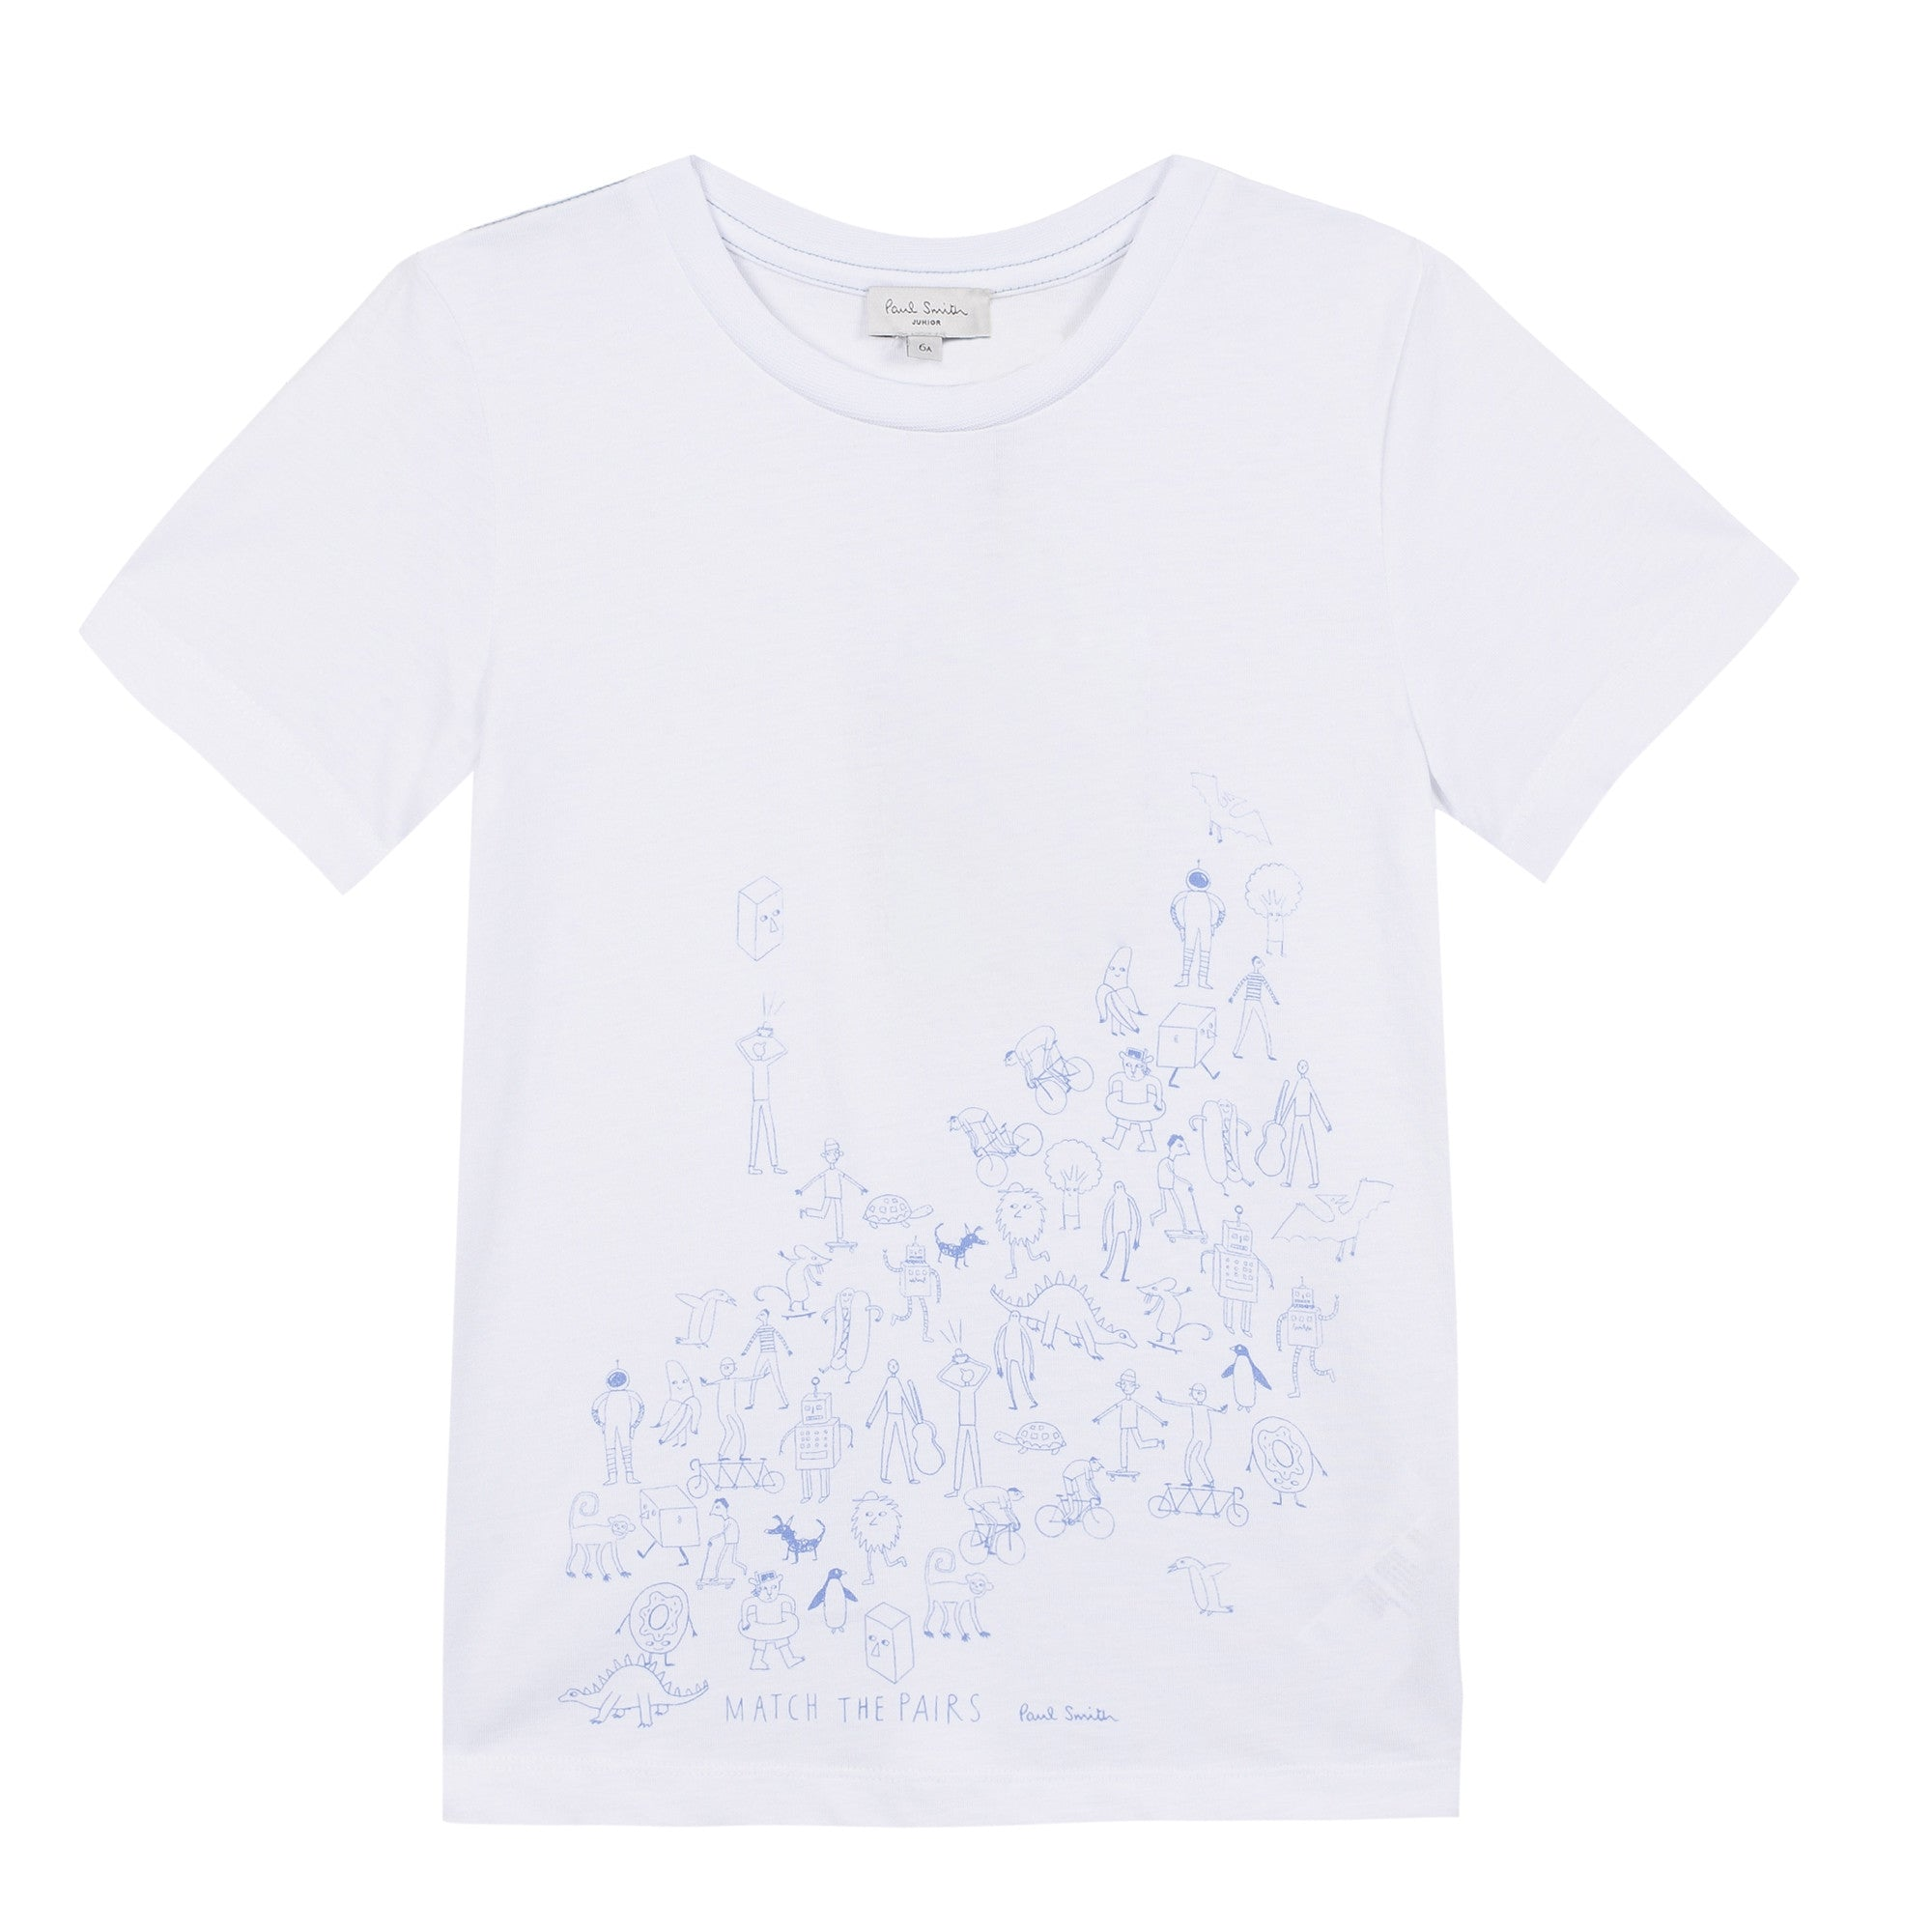 Paul Smith White Crowd Tee